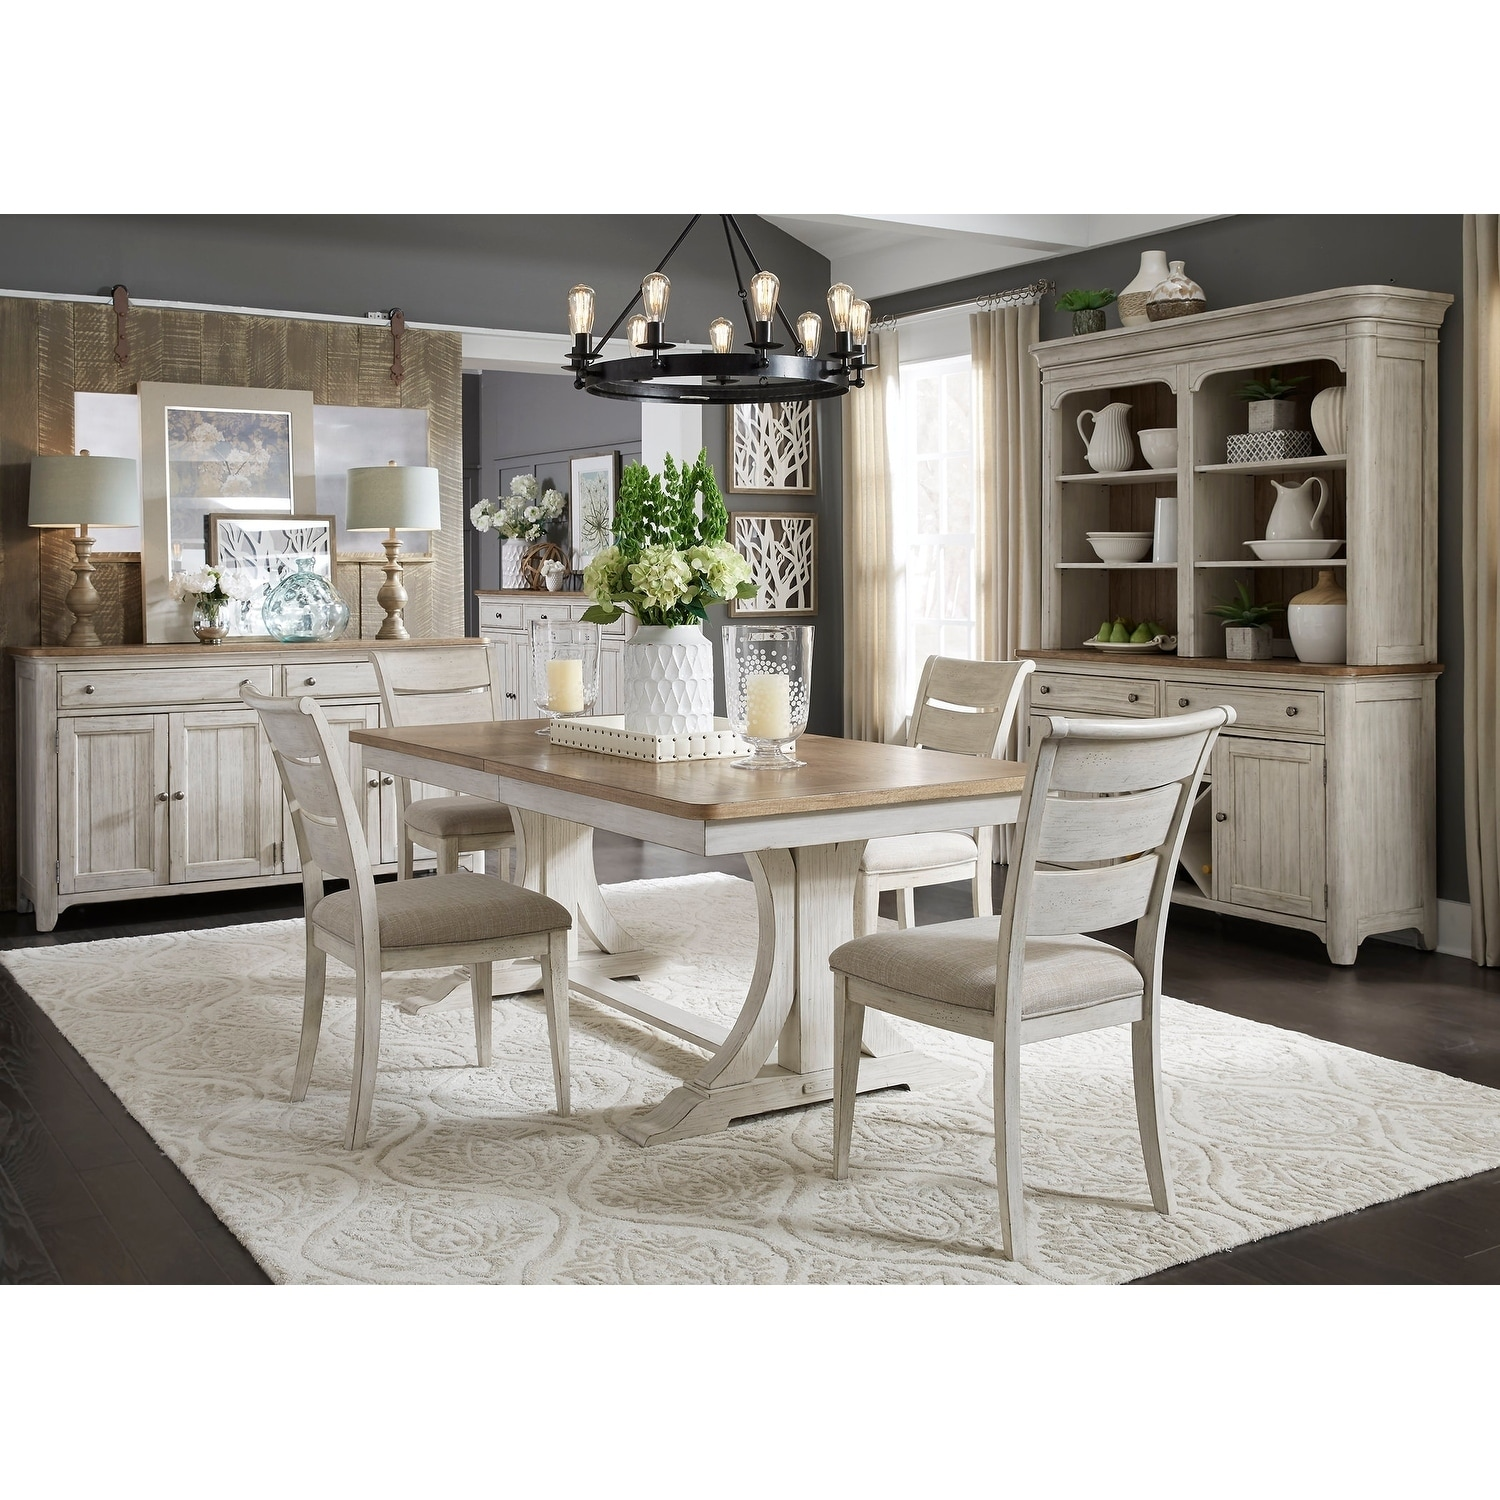 Shop Farmhouse Antique Two-toned Opt 5-piece Trestle Table Dining Set - On Sale - Free Shipping Today - Overstock.com - 18620103  sc 1 st  Overstock & Shop Farmhouse Antique Two-toned Opt 5-piece Trestle Table Dining ...